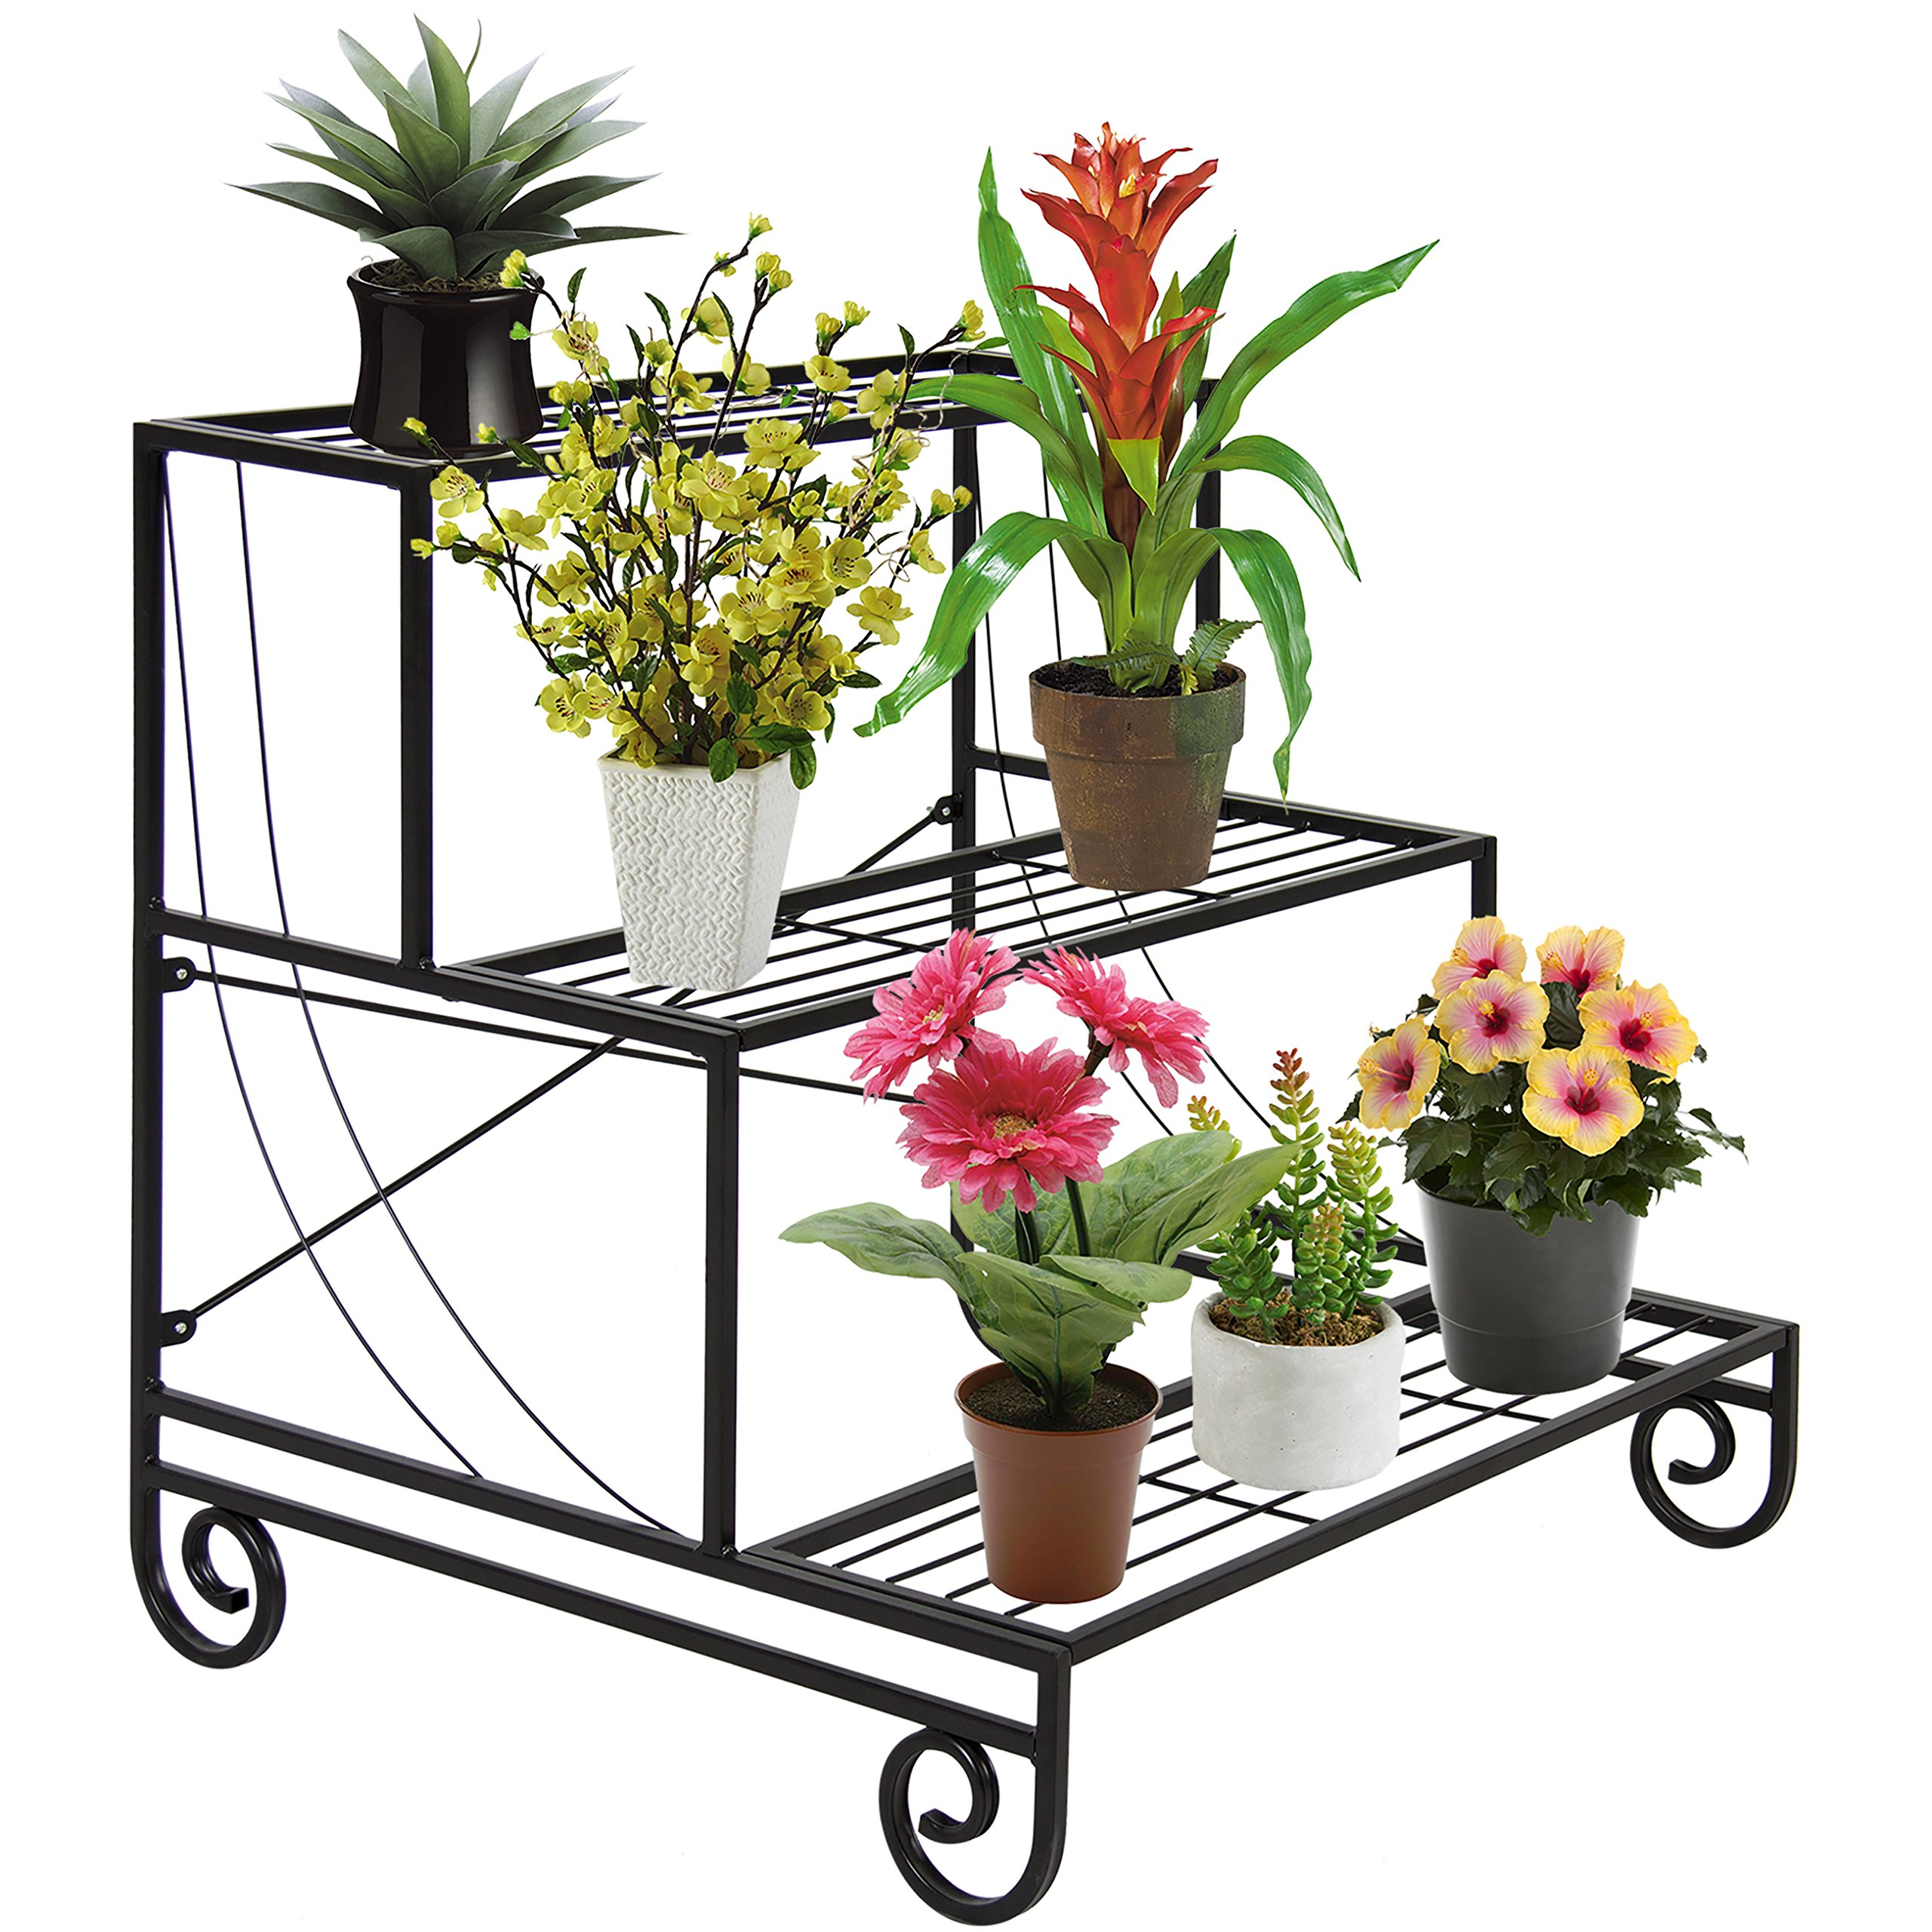 Best Choice Products 3 Tier Metal Plant Stand Decorative Planter Holder Flower Pot Shelf Rack Black by Best Choice Products